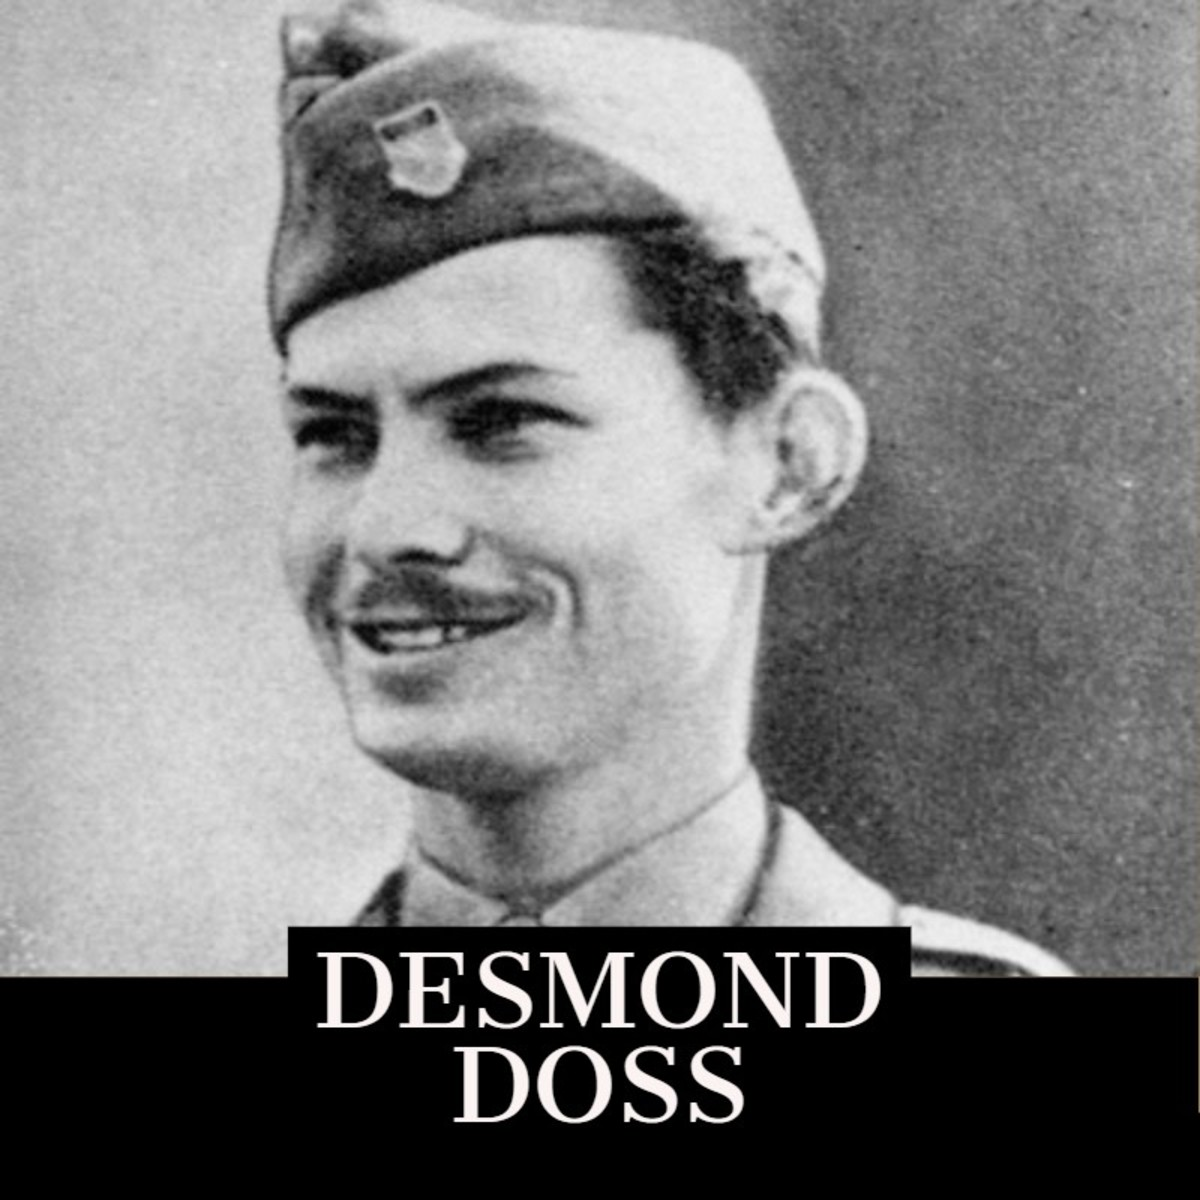 Desmond Doss; Famous Army Medic; Medal of Honor Recipient